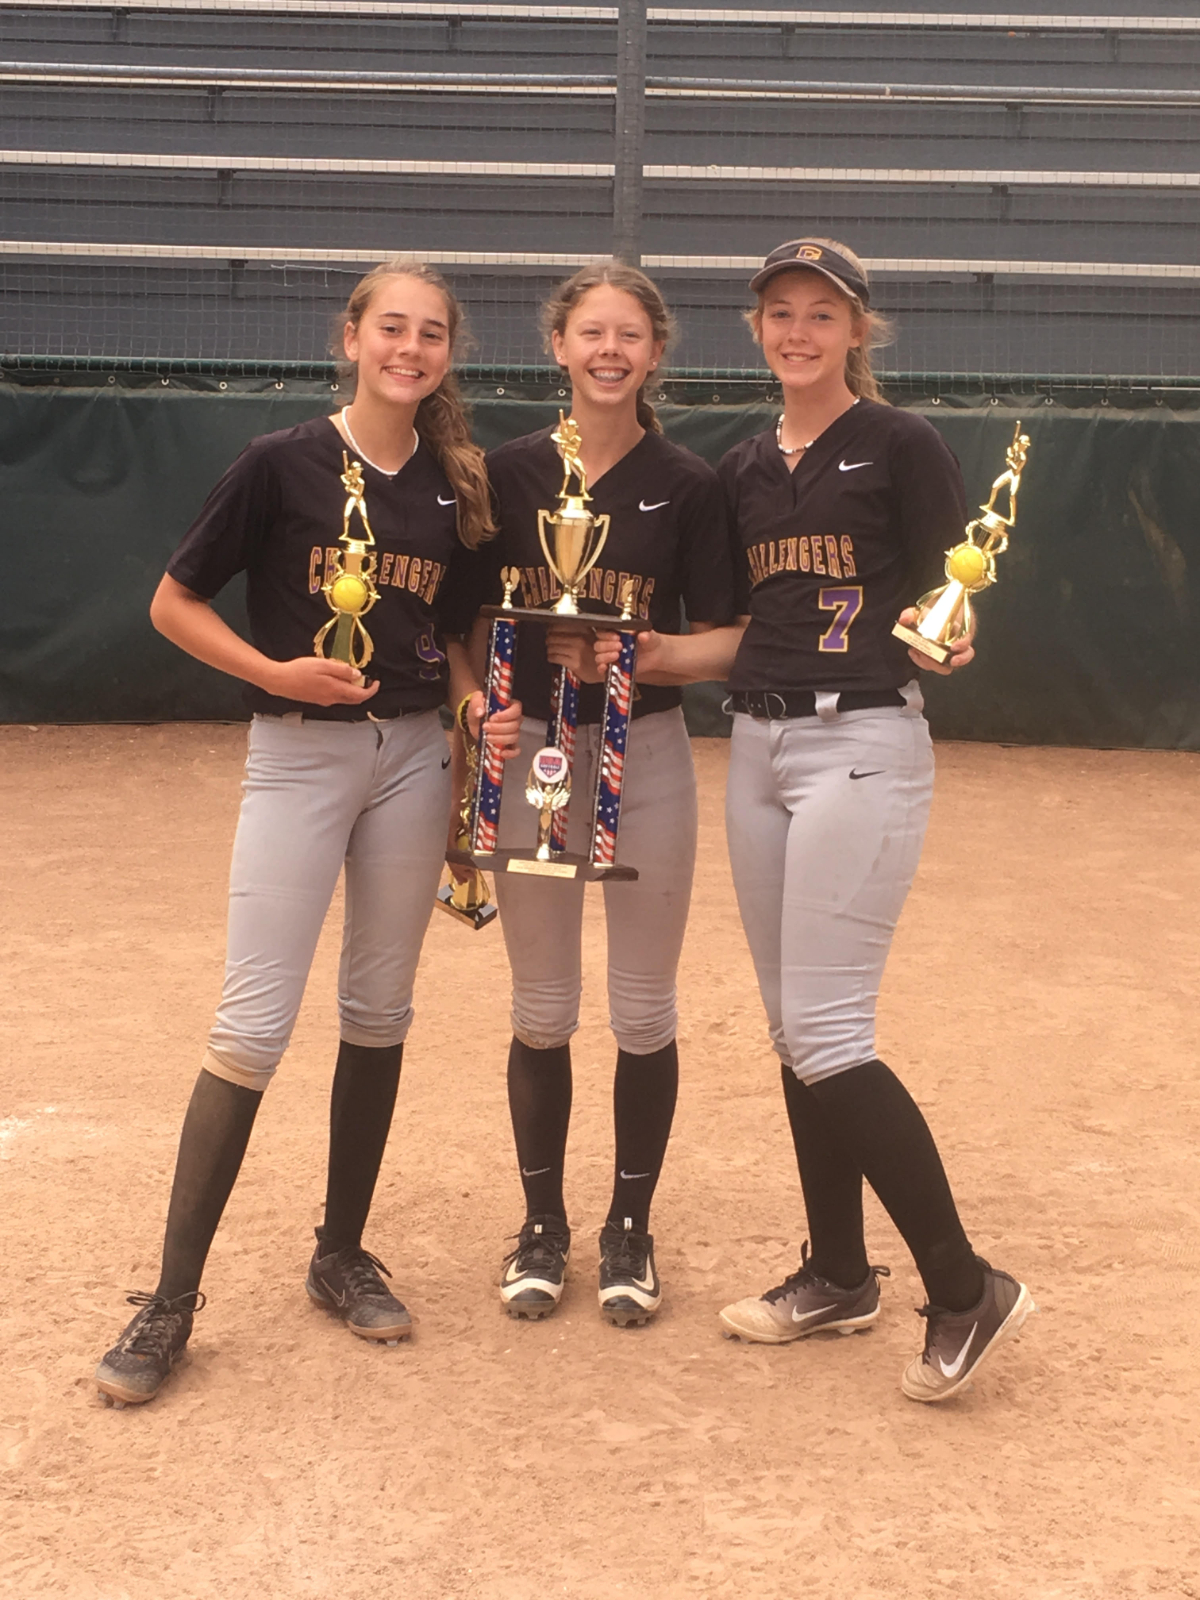 Softball: CCHS Traveling Team Is Road Royalty